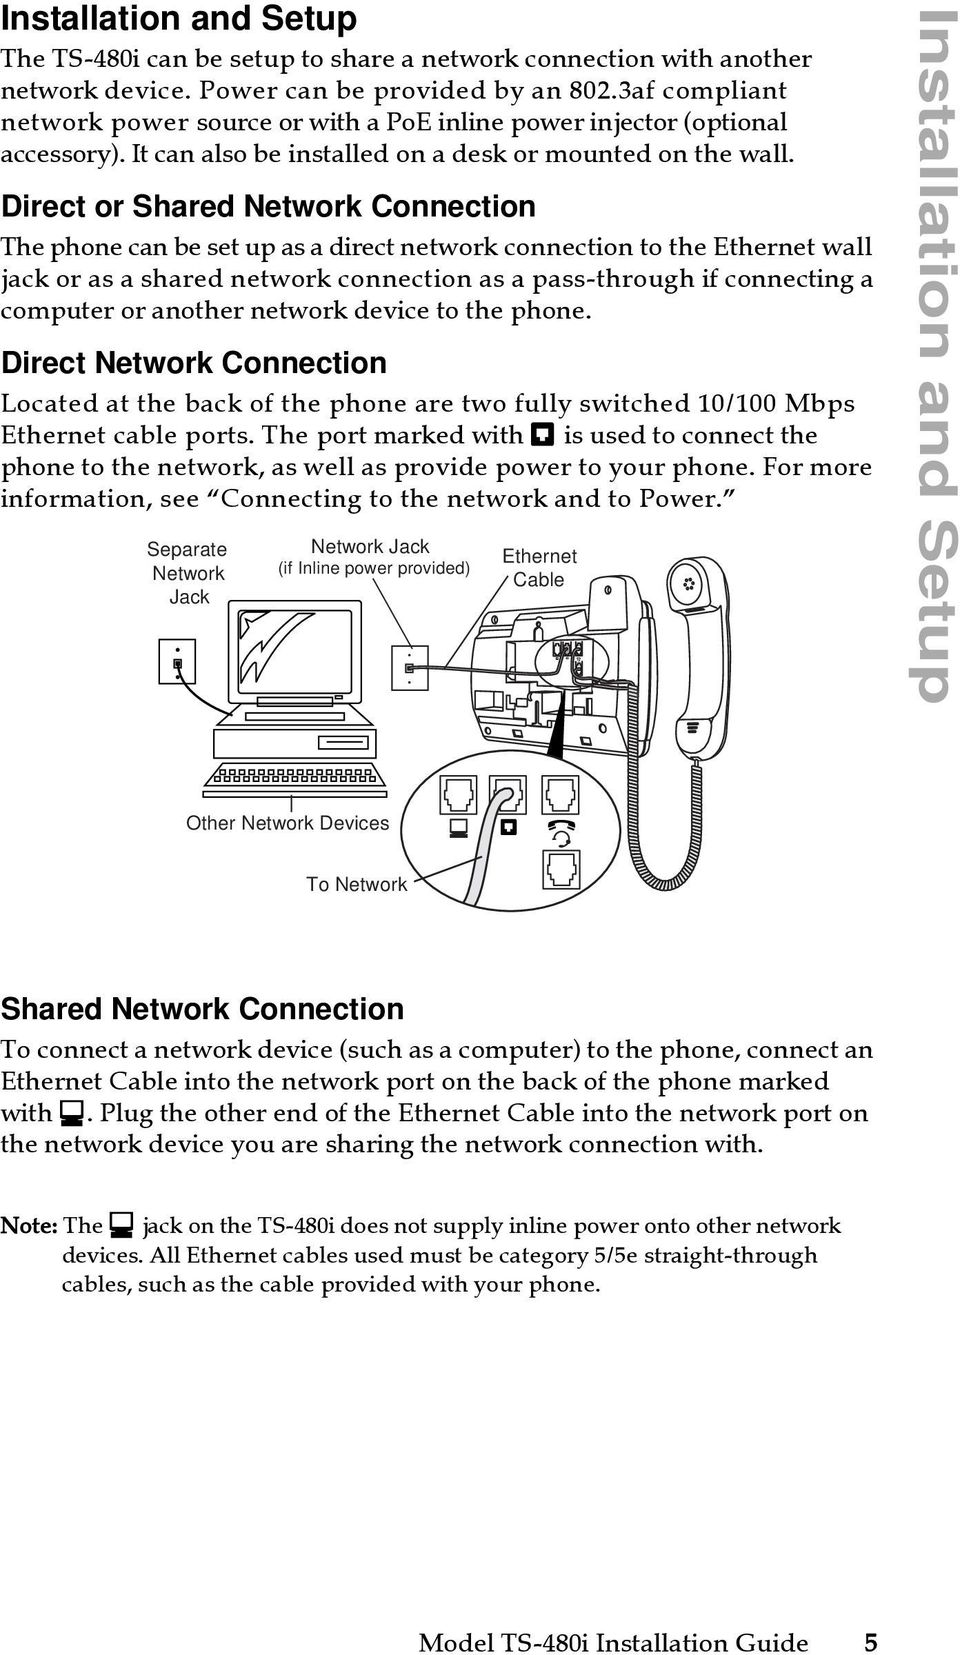 Direct or Shared Network Connection The phone can be set up as a direct network connection to the Ethernet wall jack or as a shared network connection as a pass-through if connecting a computer or